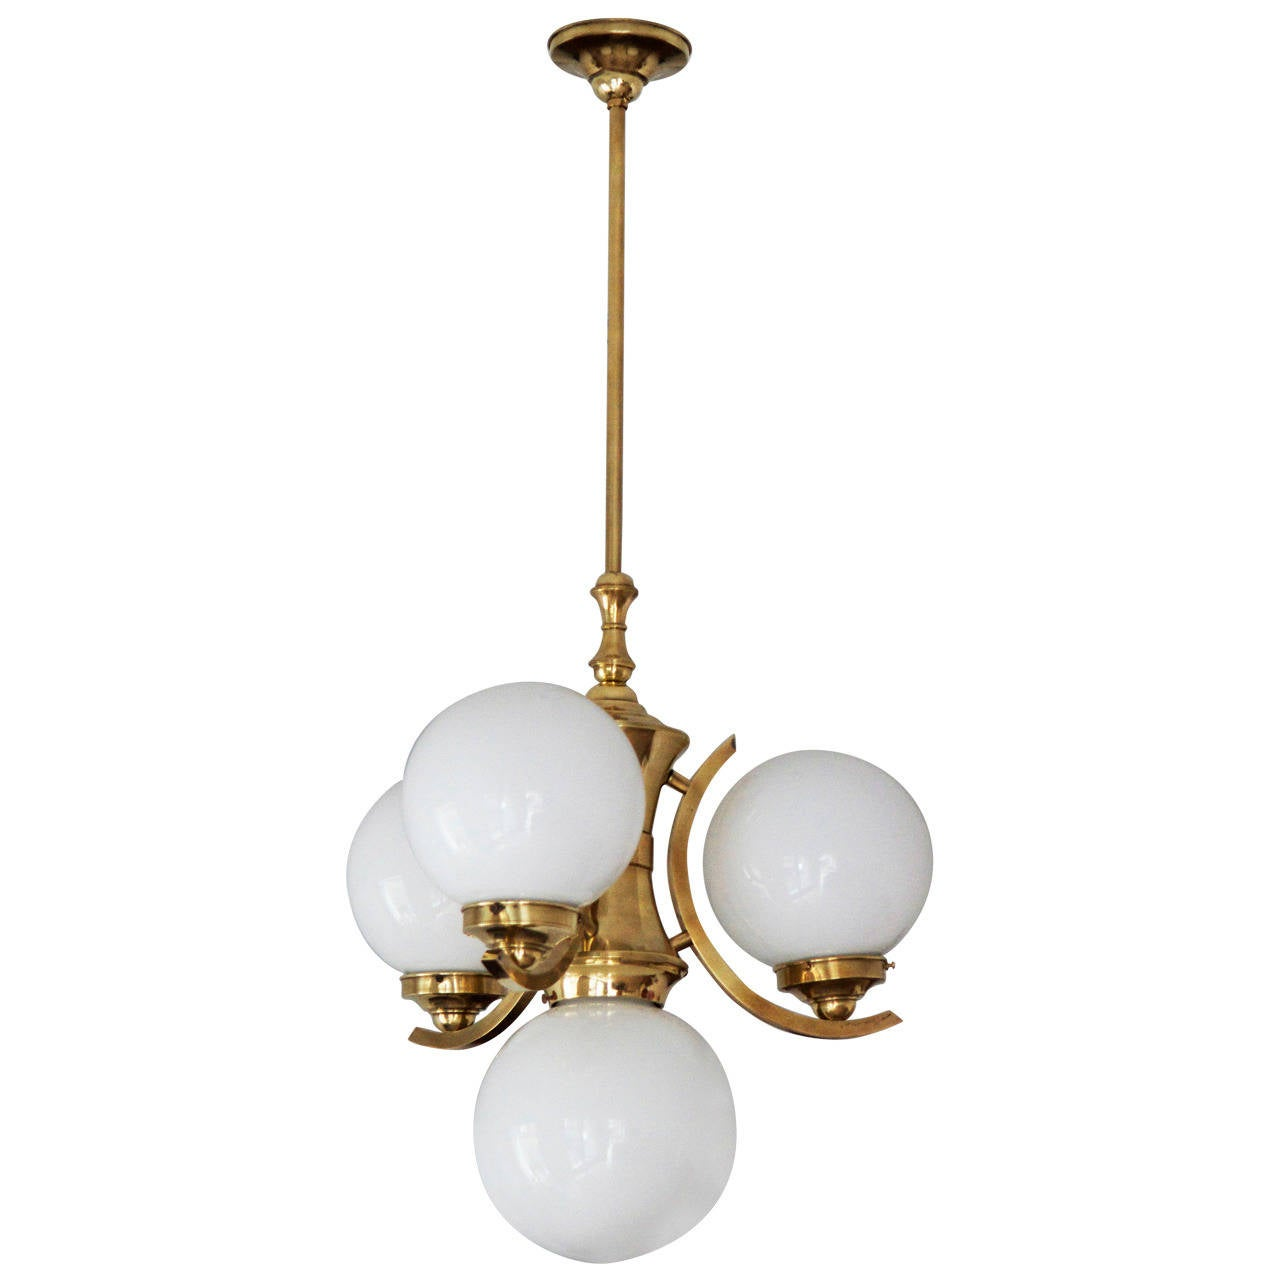 Art deco ball chandelier circa 1930s at 1stdibs - Lighting and chandeliers ...